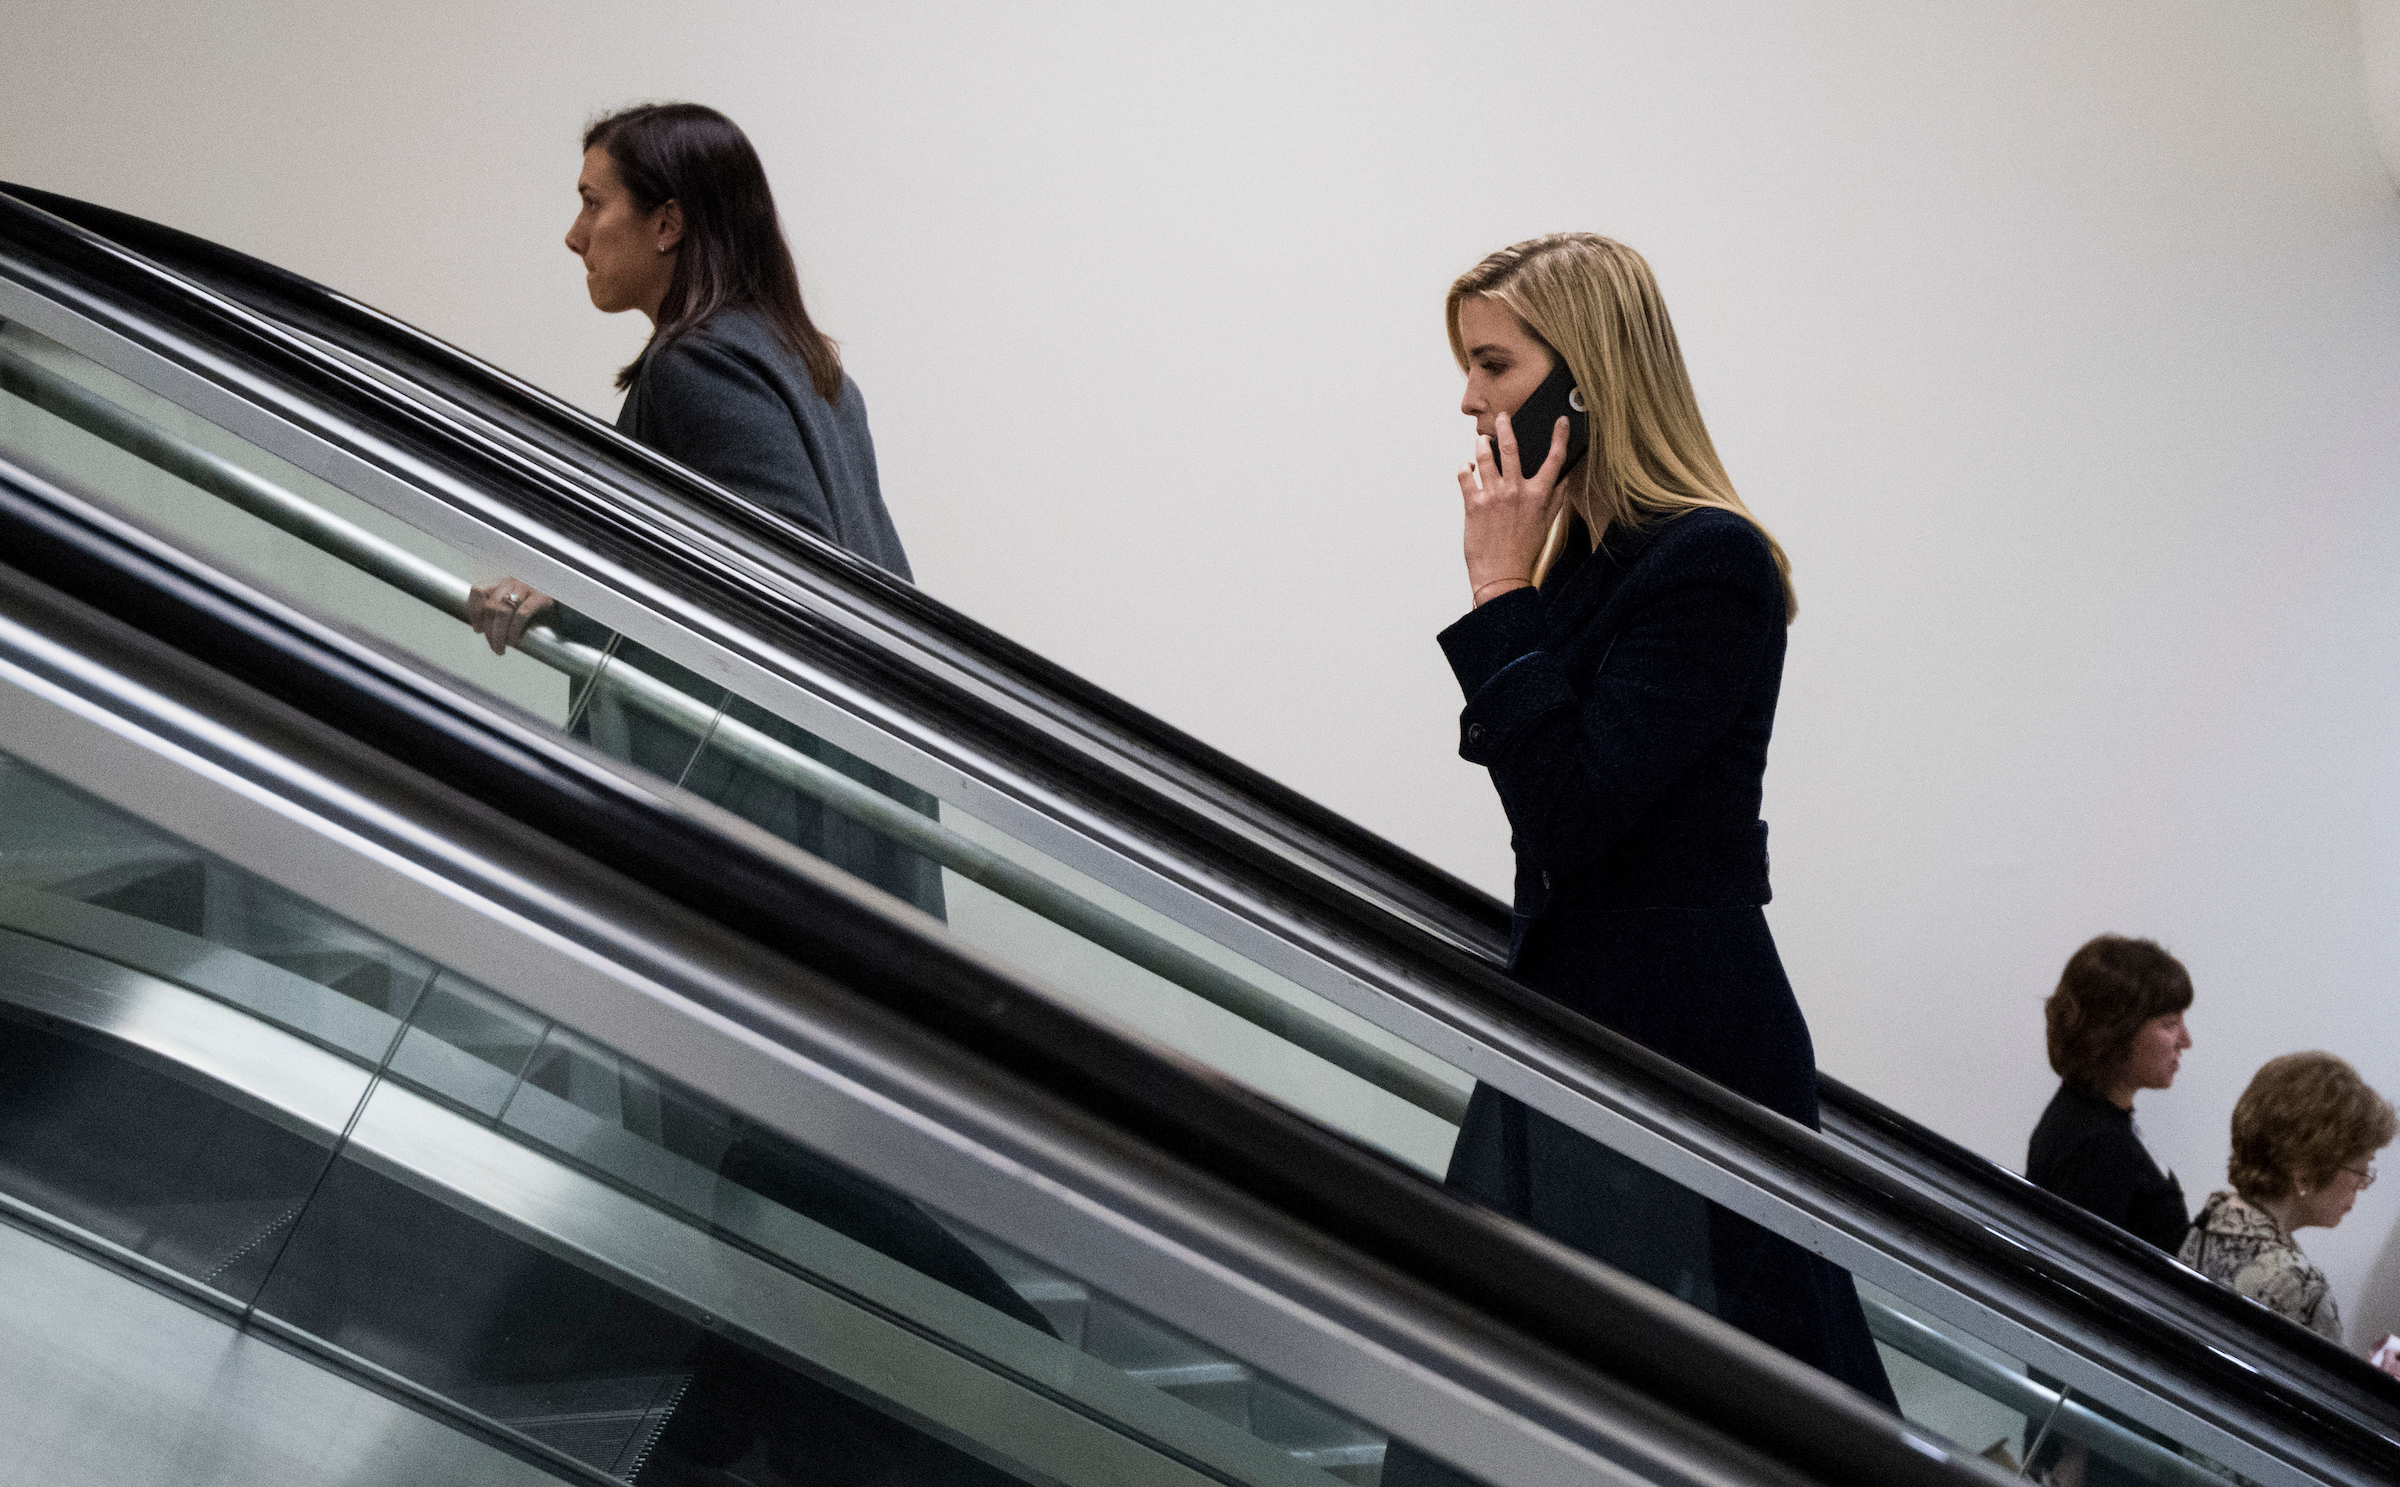 UNITED STATES - NOVEMBER 16: Ivanka Trump enters the U.S. Capitol via the Senate subway on Thursday, Nov. 16, 2017. (Photo By Bill Clark/CQ Roll Call)